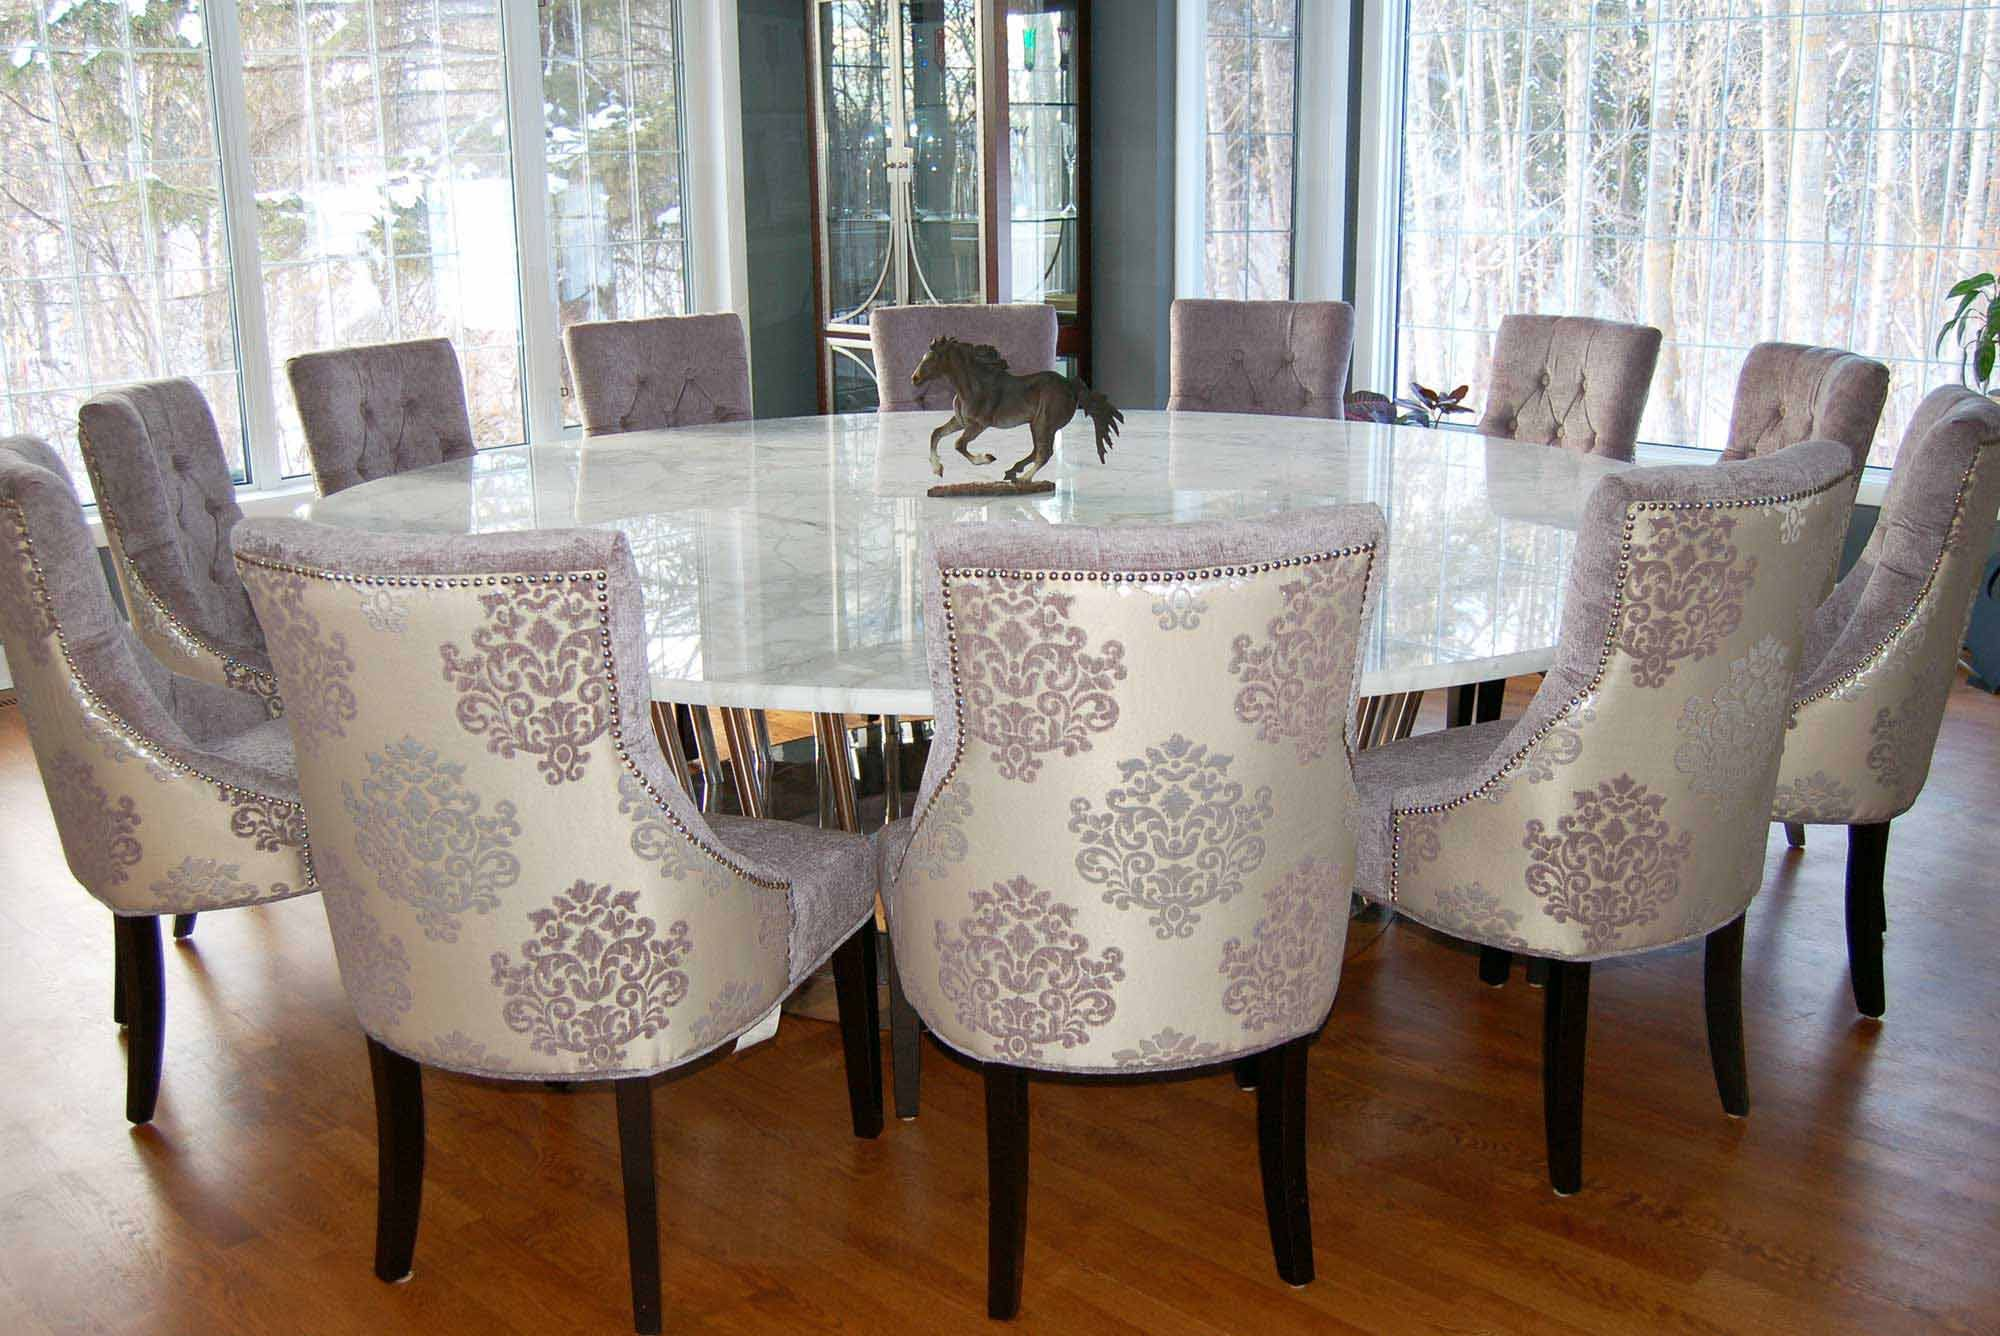 Dining Room Big Rounded Dining Table With Marble Top Expensive And Elegant Dining Ch Round Dining Room Table Large Dining Room Table Large Square Dining Table